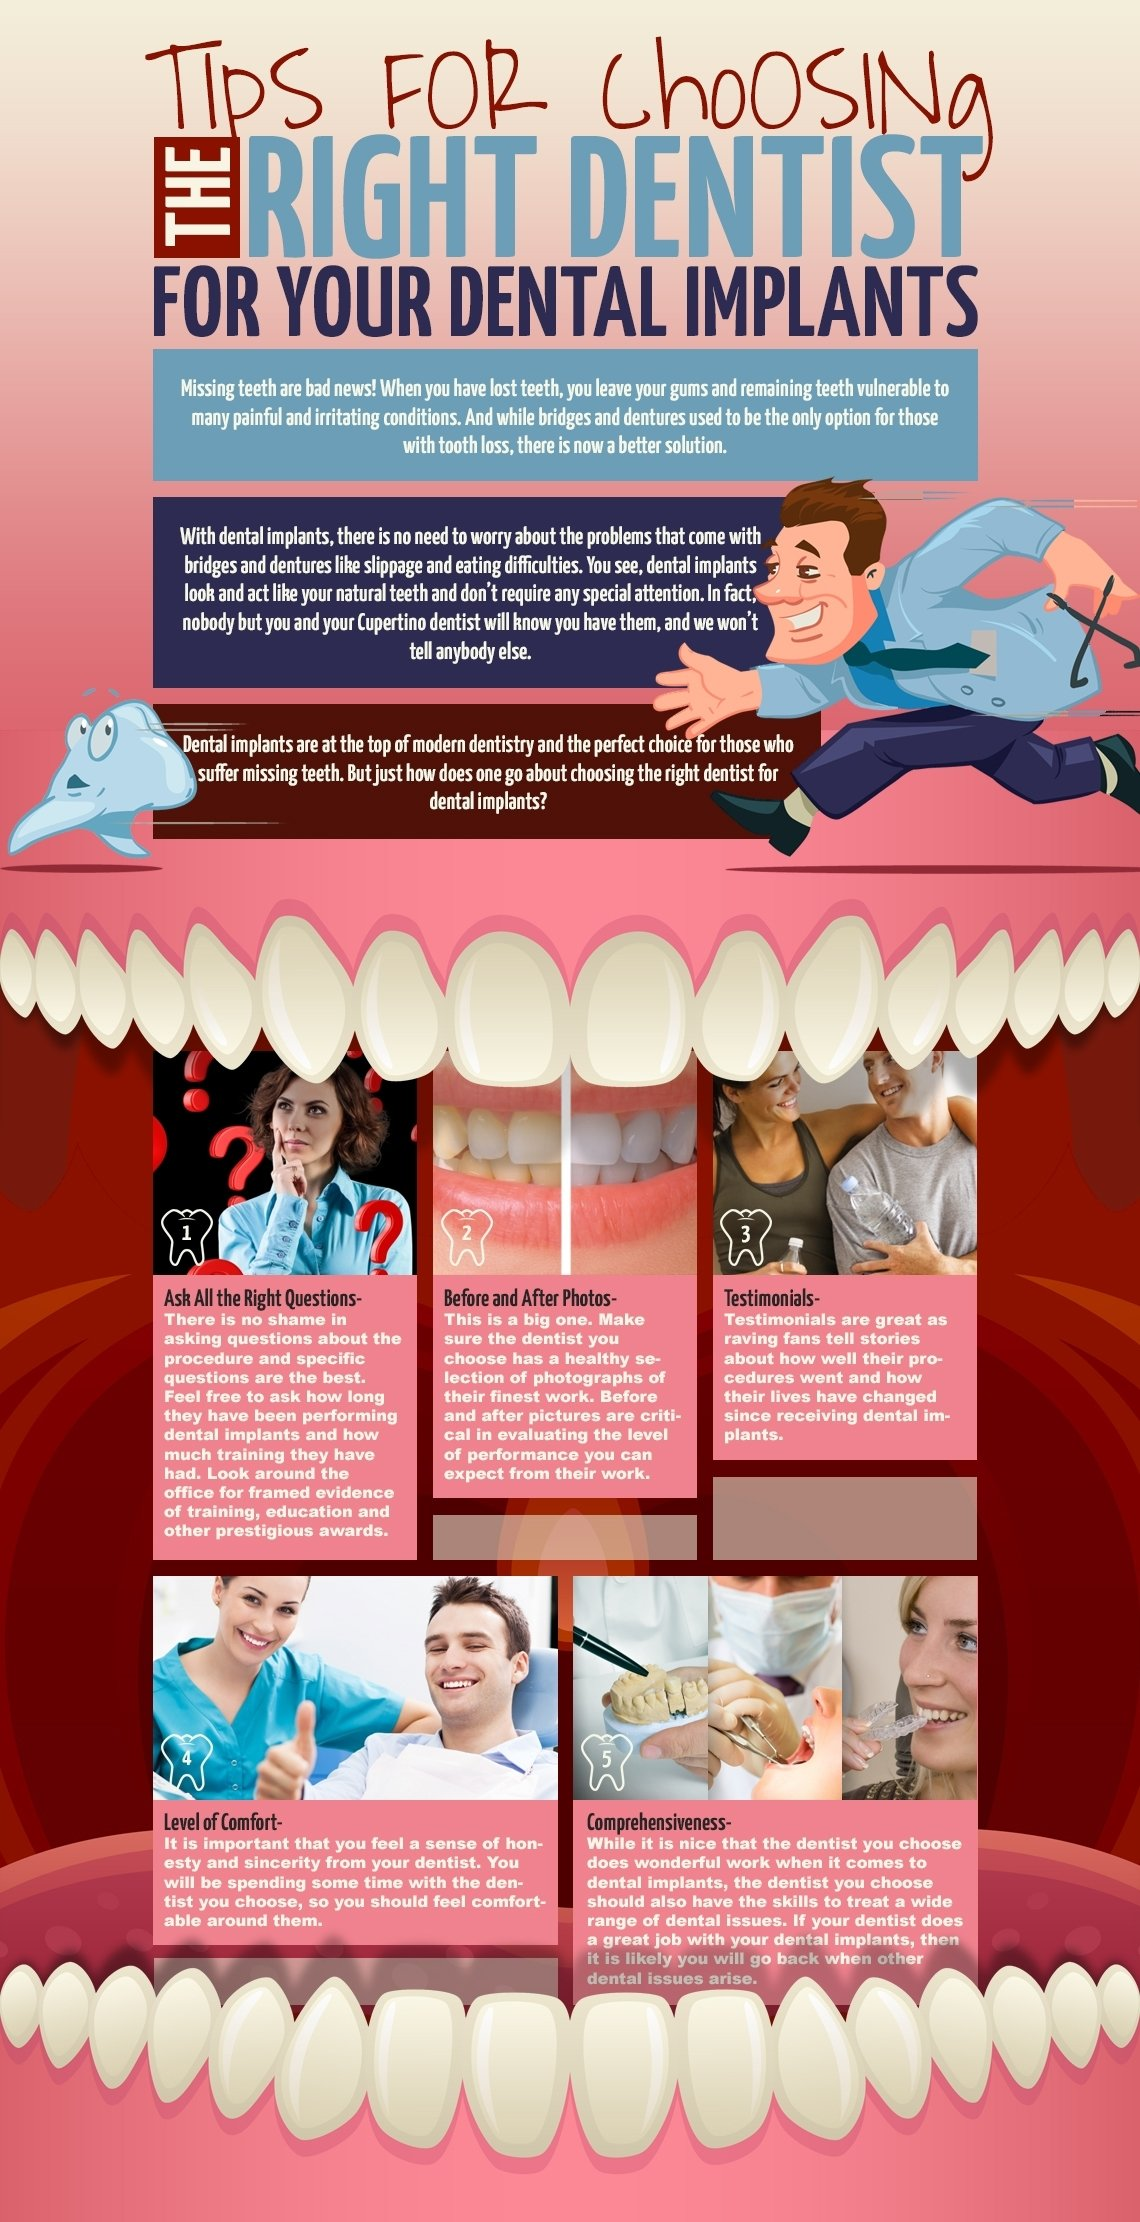 10 Unique Marketing Ideas For Dental Offices 7 dental marketing tips and ideas that will grow your practice